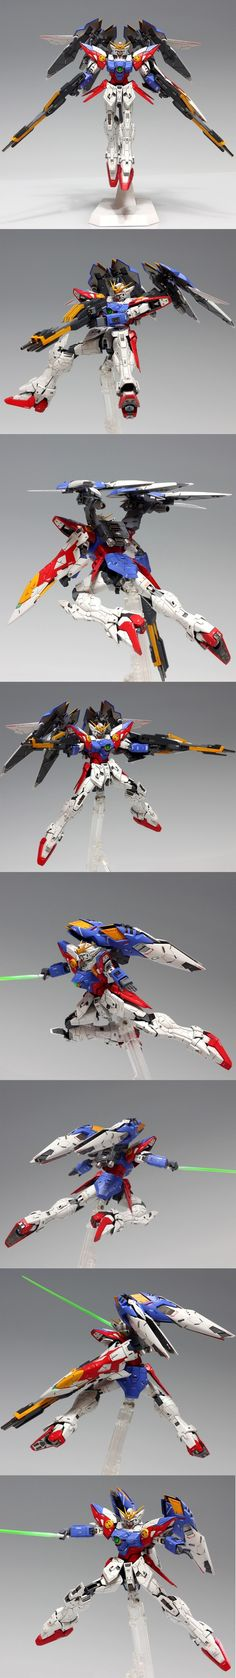 Wing Zero, from Mobile Suit Gundam Wing, and while it doesn't show it here, it can transform into a fighter jet.